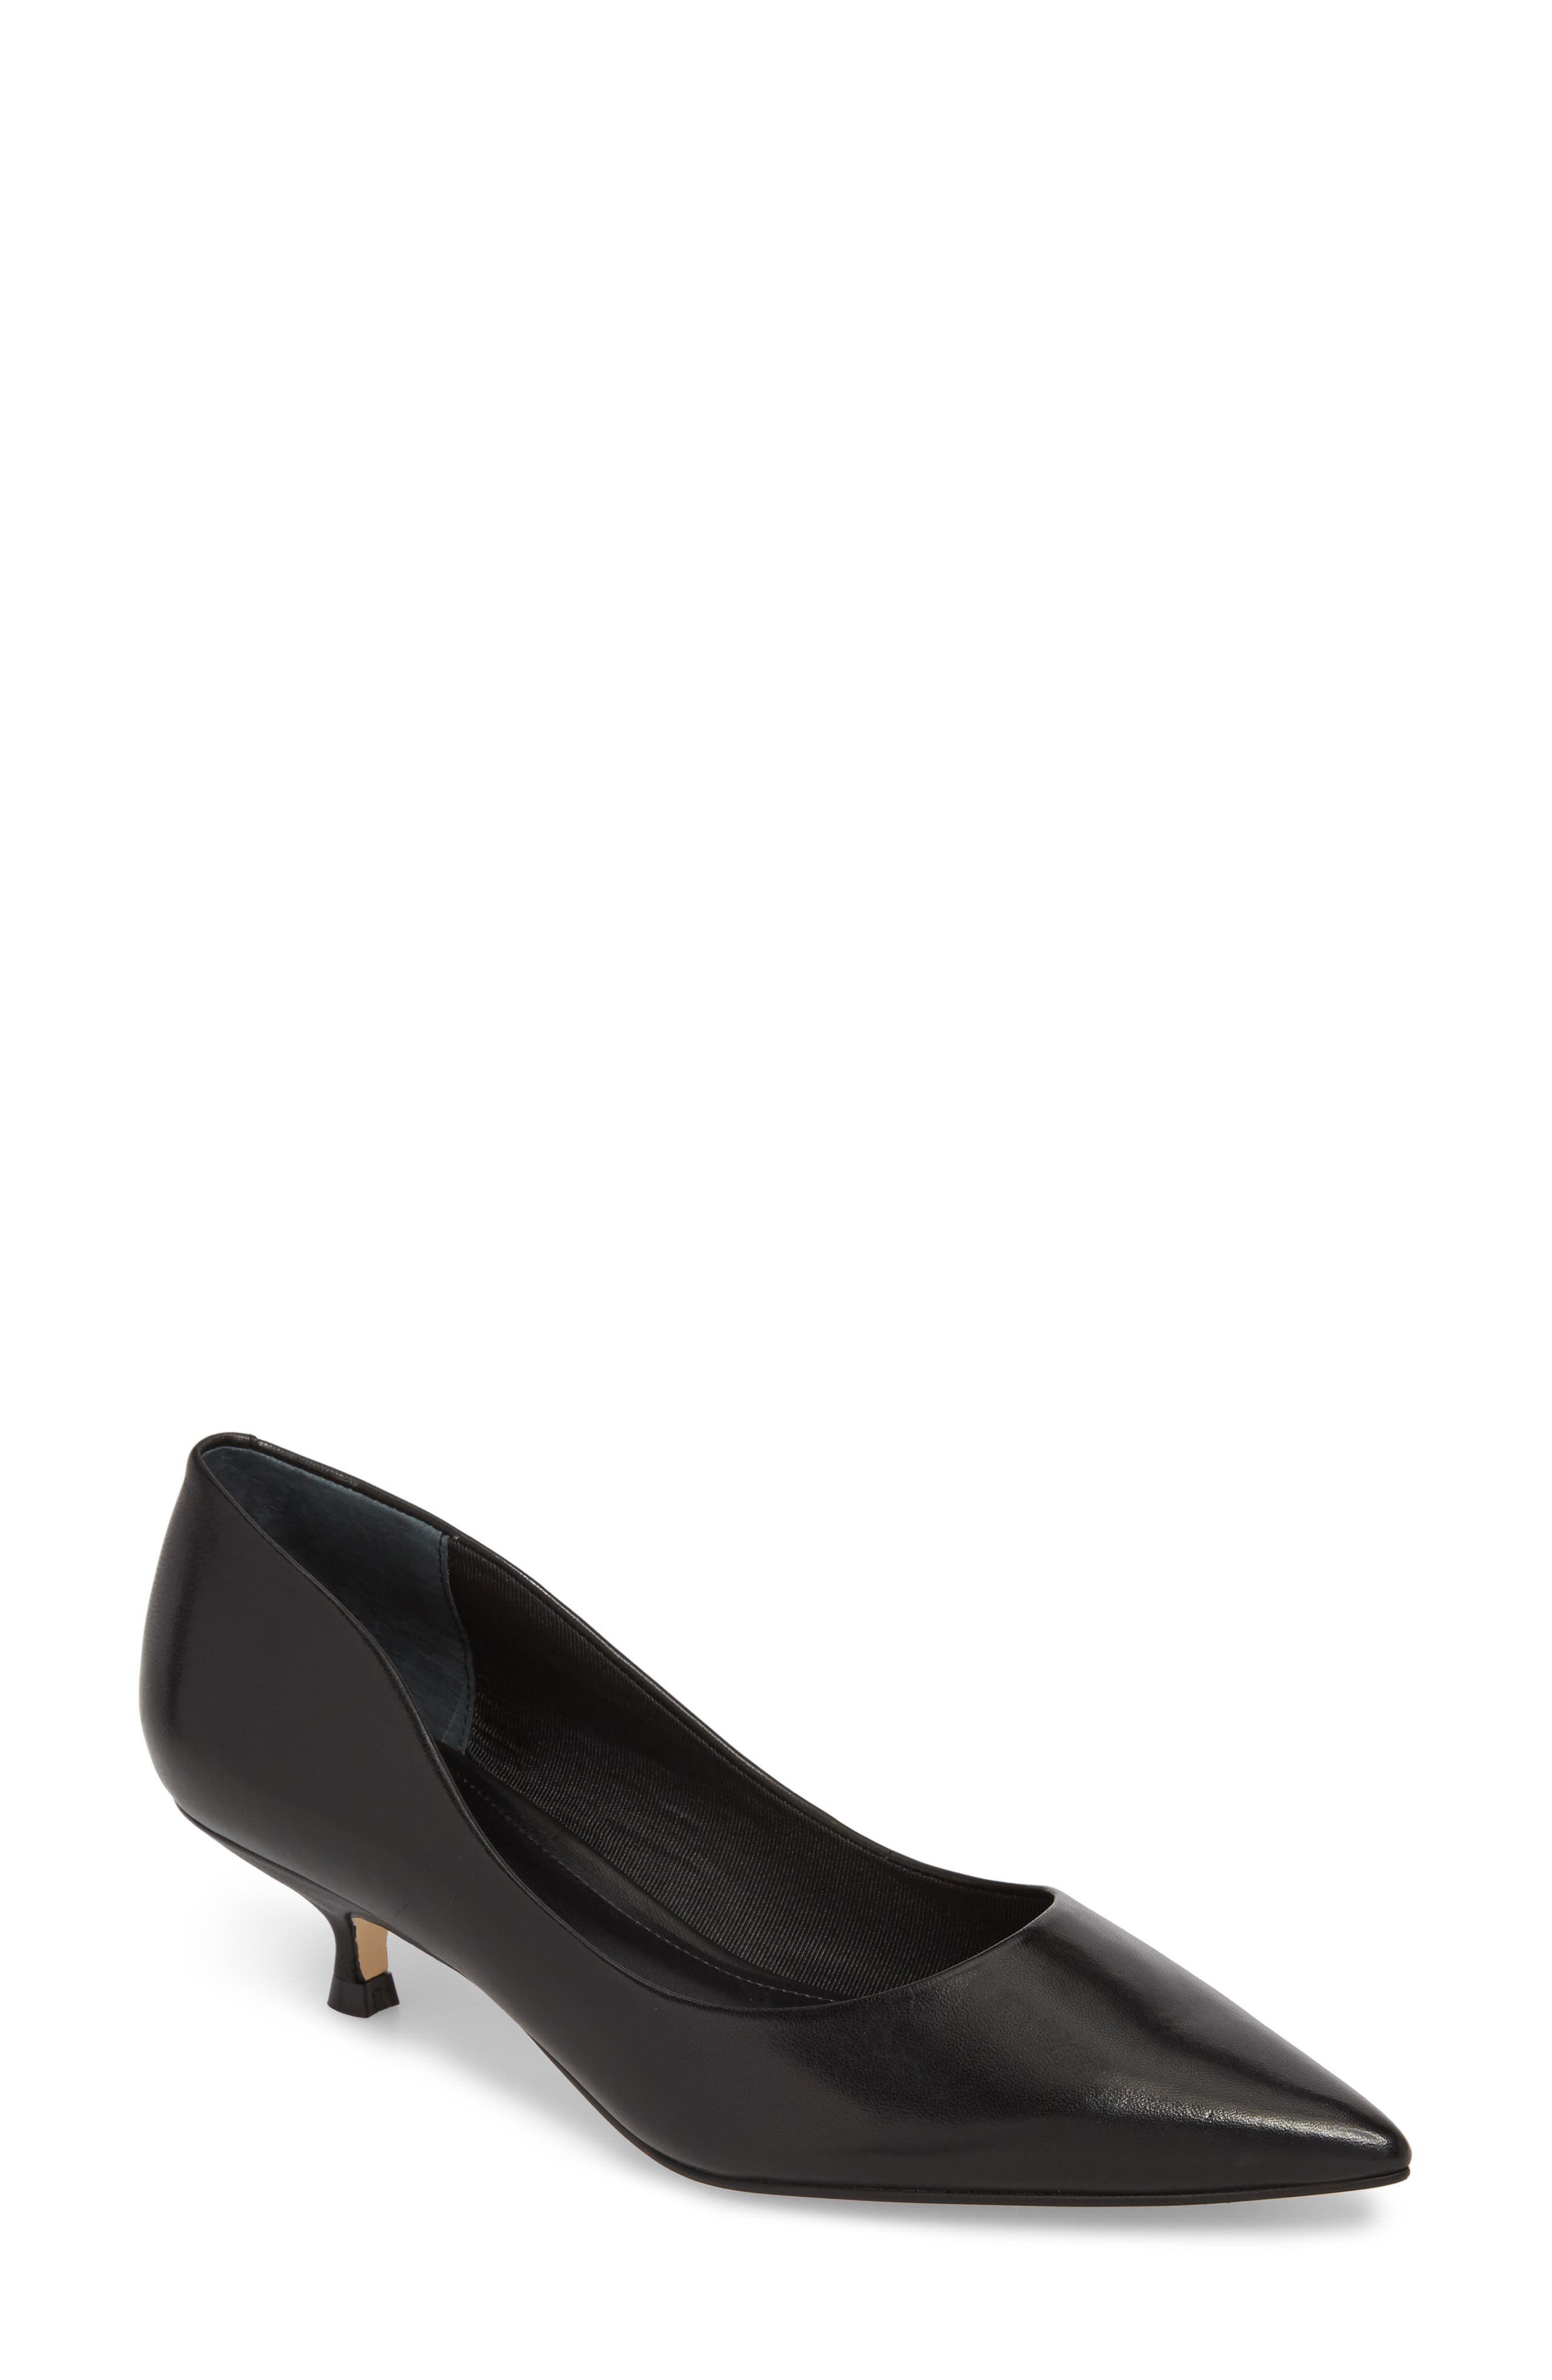 Xanthe Kitten Heel Pump,                         Main,                         color,